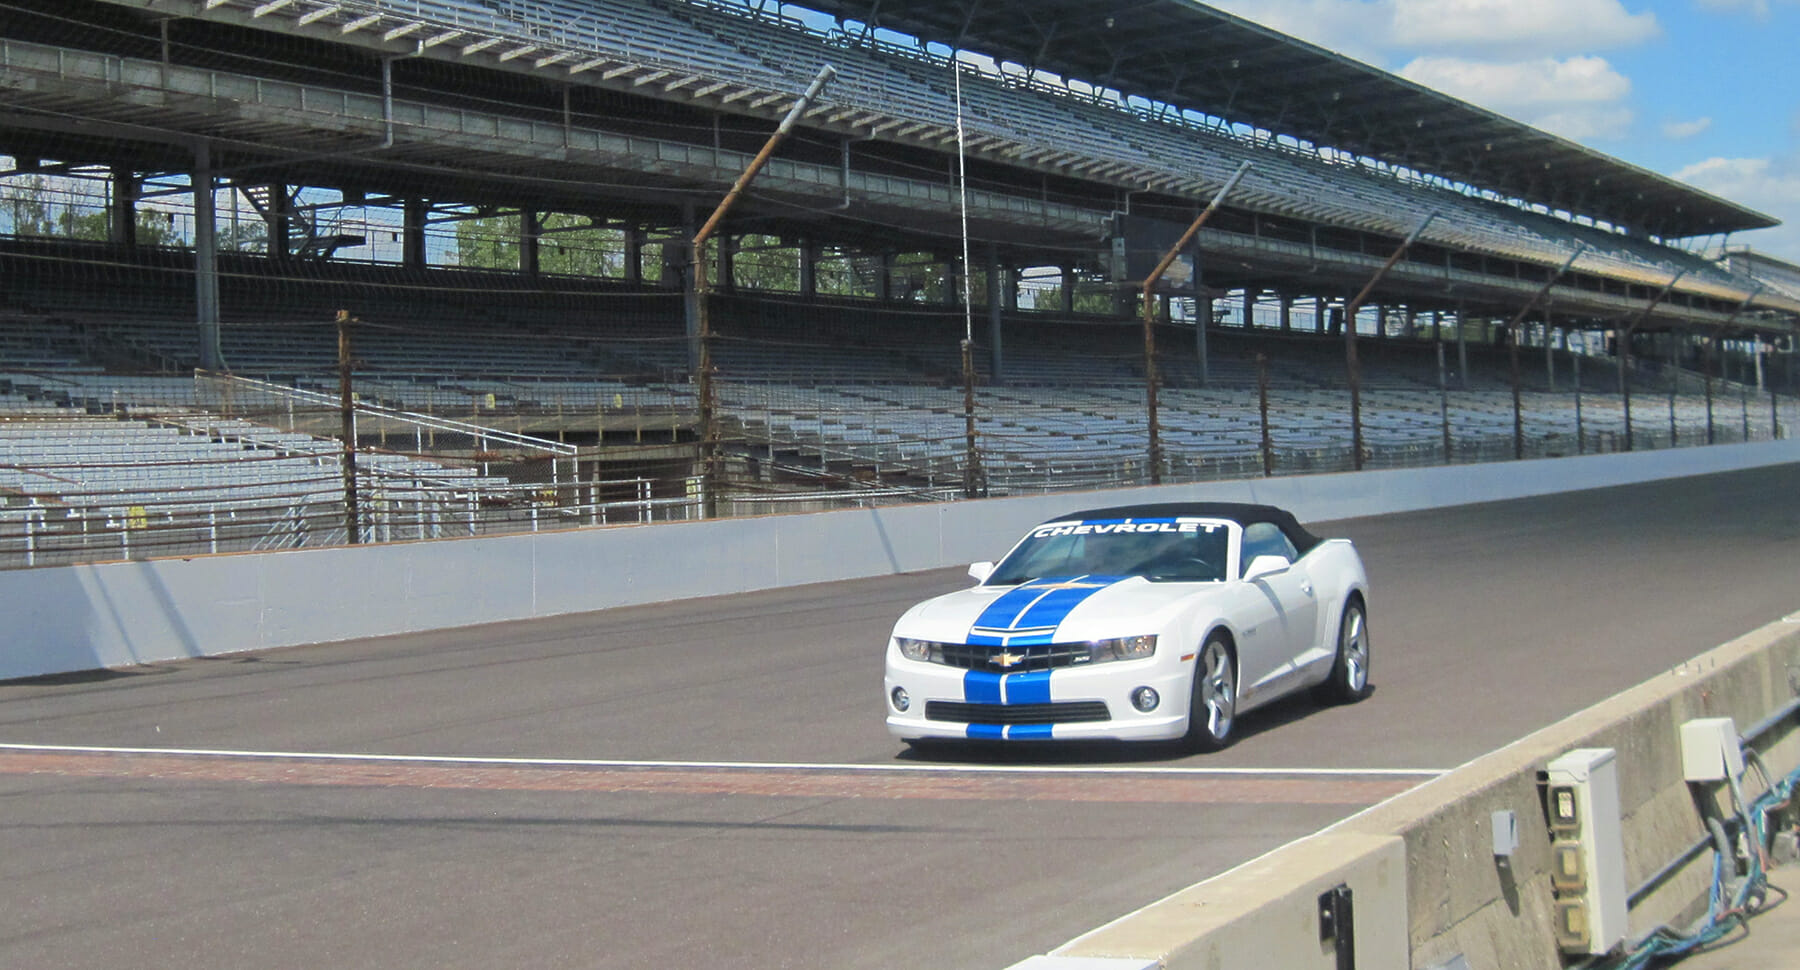 On the track at Indy